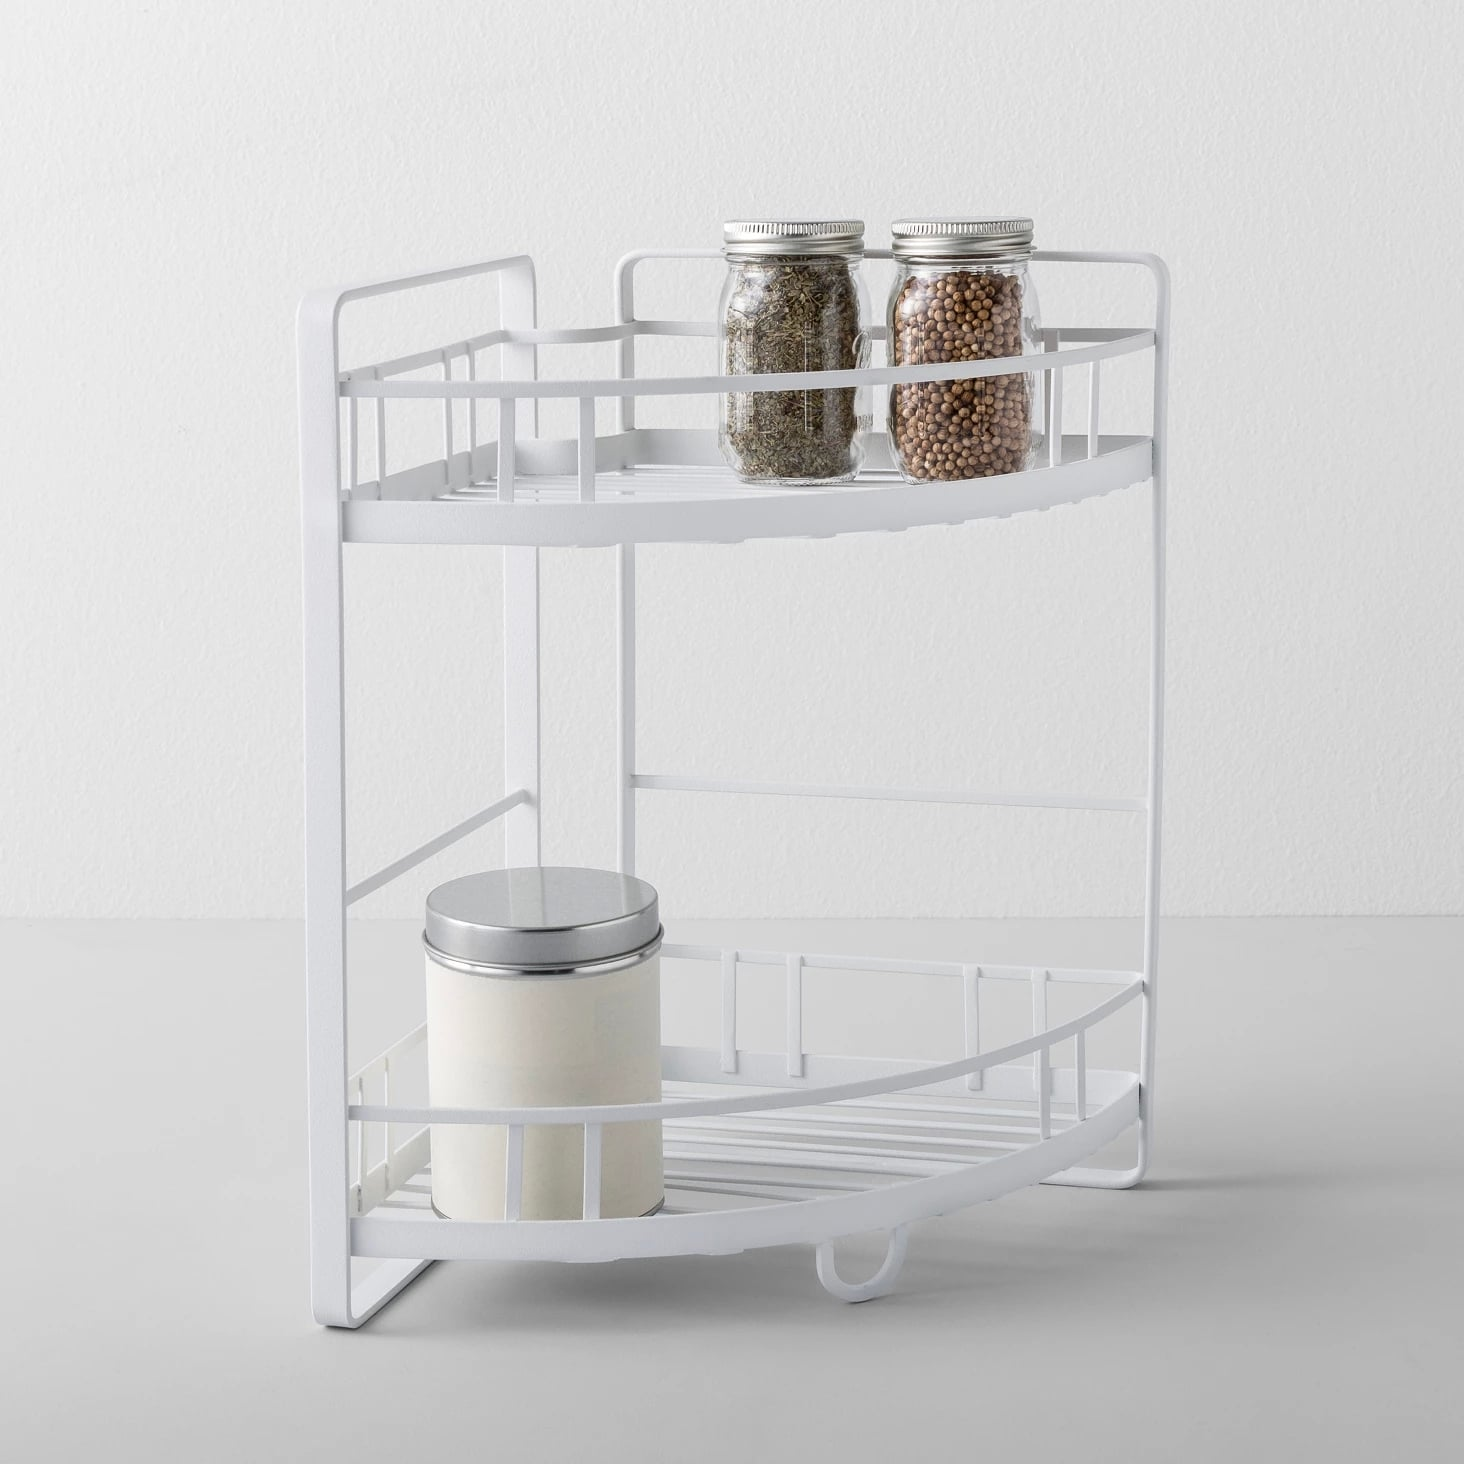 Kitchen Cabinet Organizer Corner Shelf Two Tier White | 50 ...